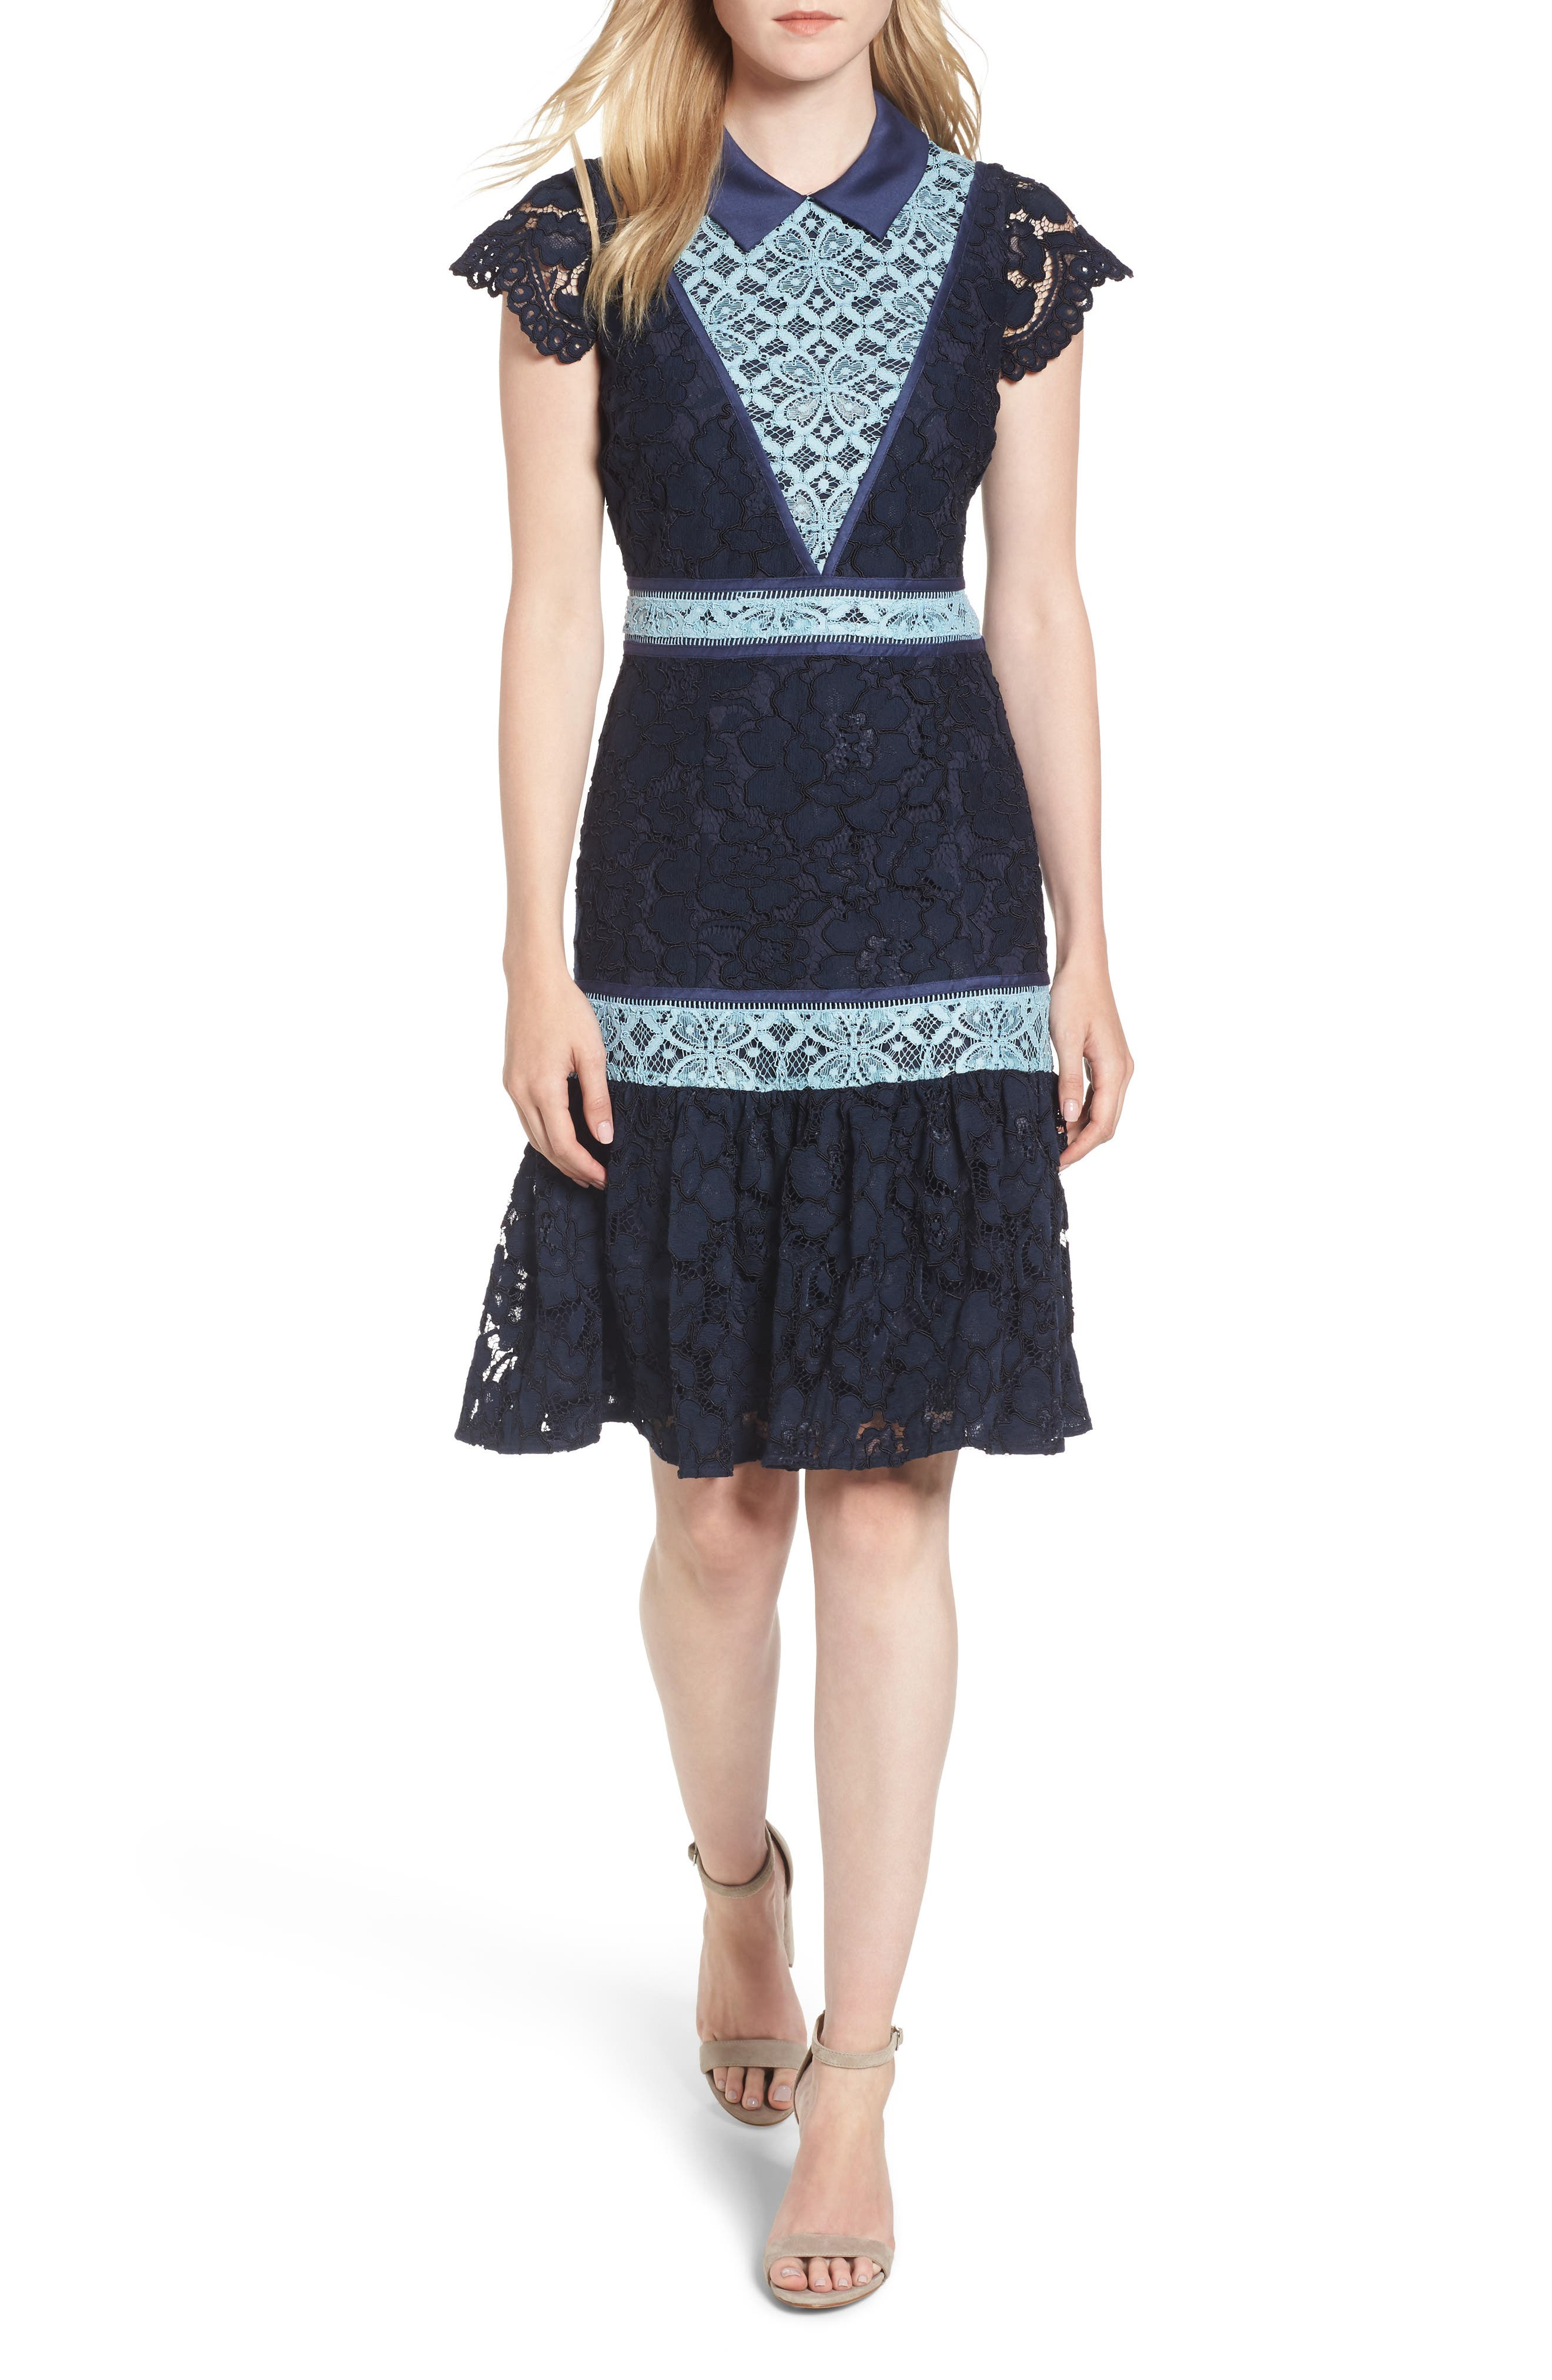 Collared Lace Collection A-Line Dress,                             Main thumbnail 1, color,                             432